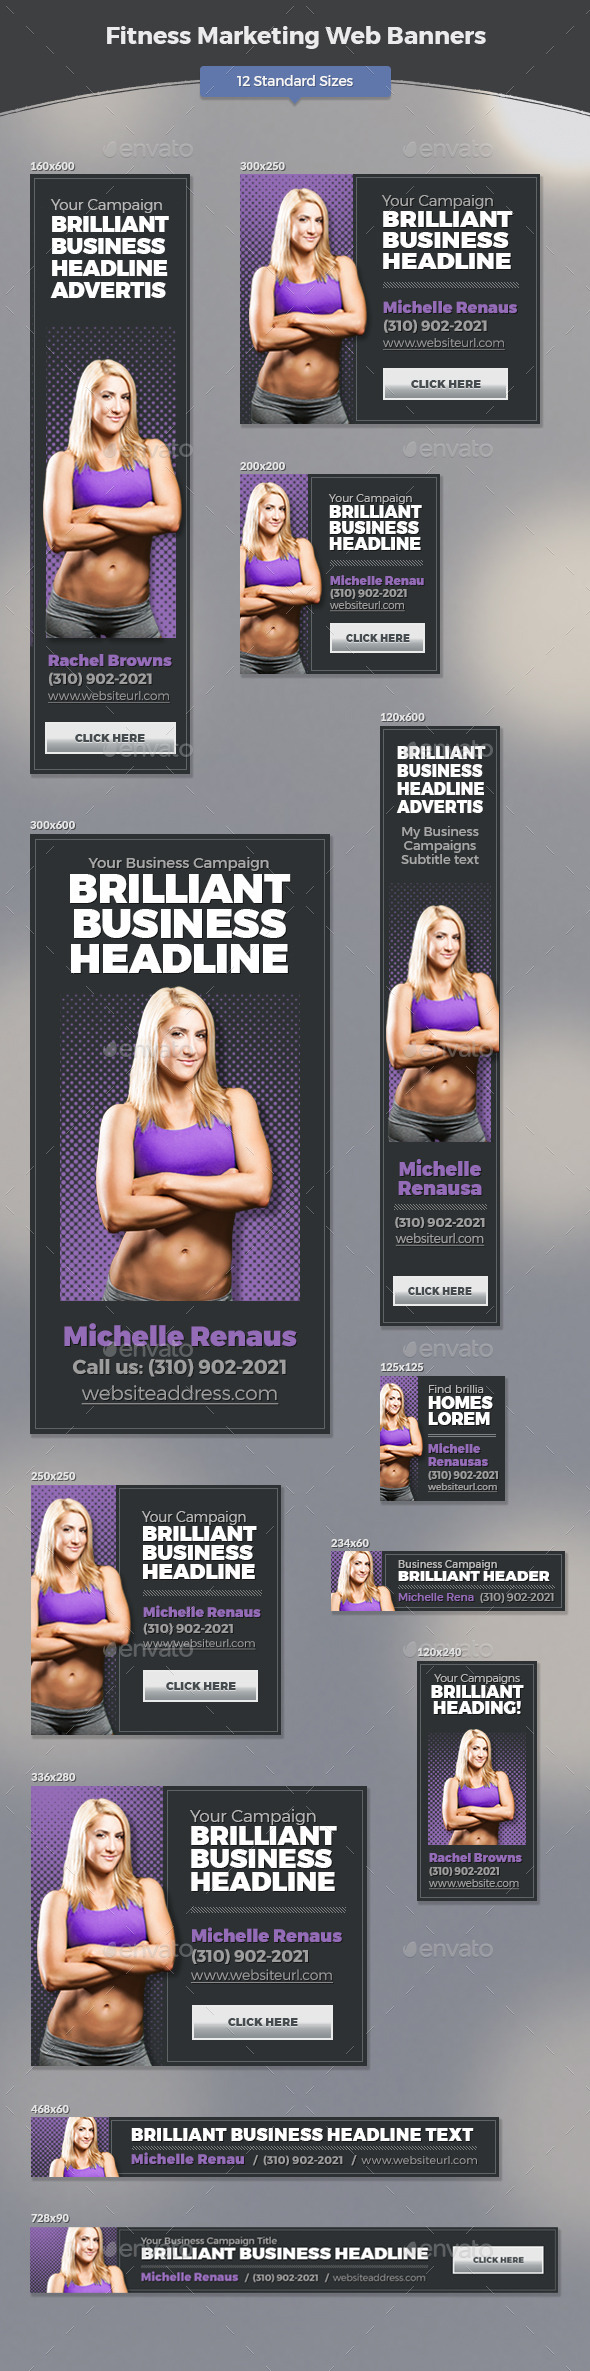 GraphicRiver Fitness Marketing Web Banners 11787459